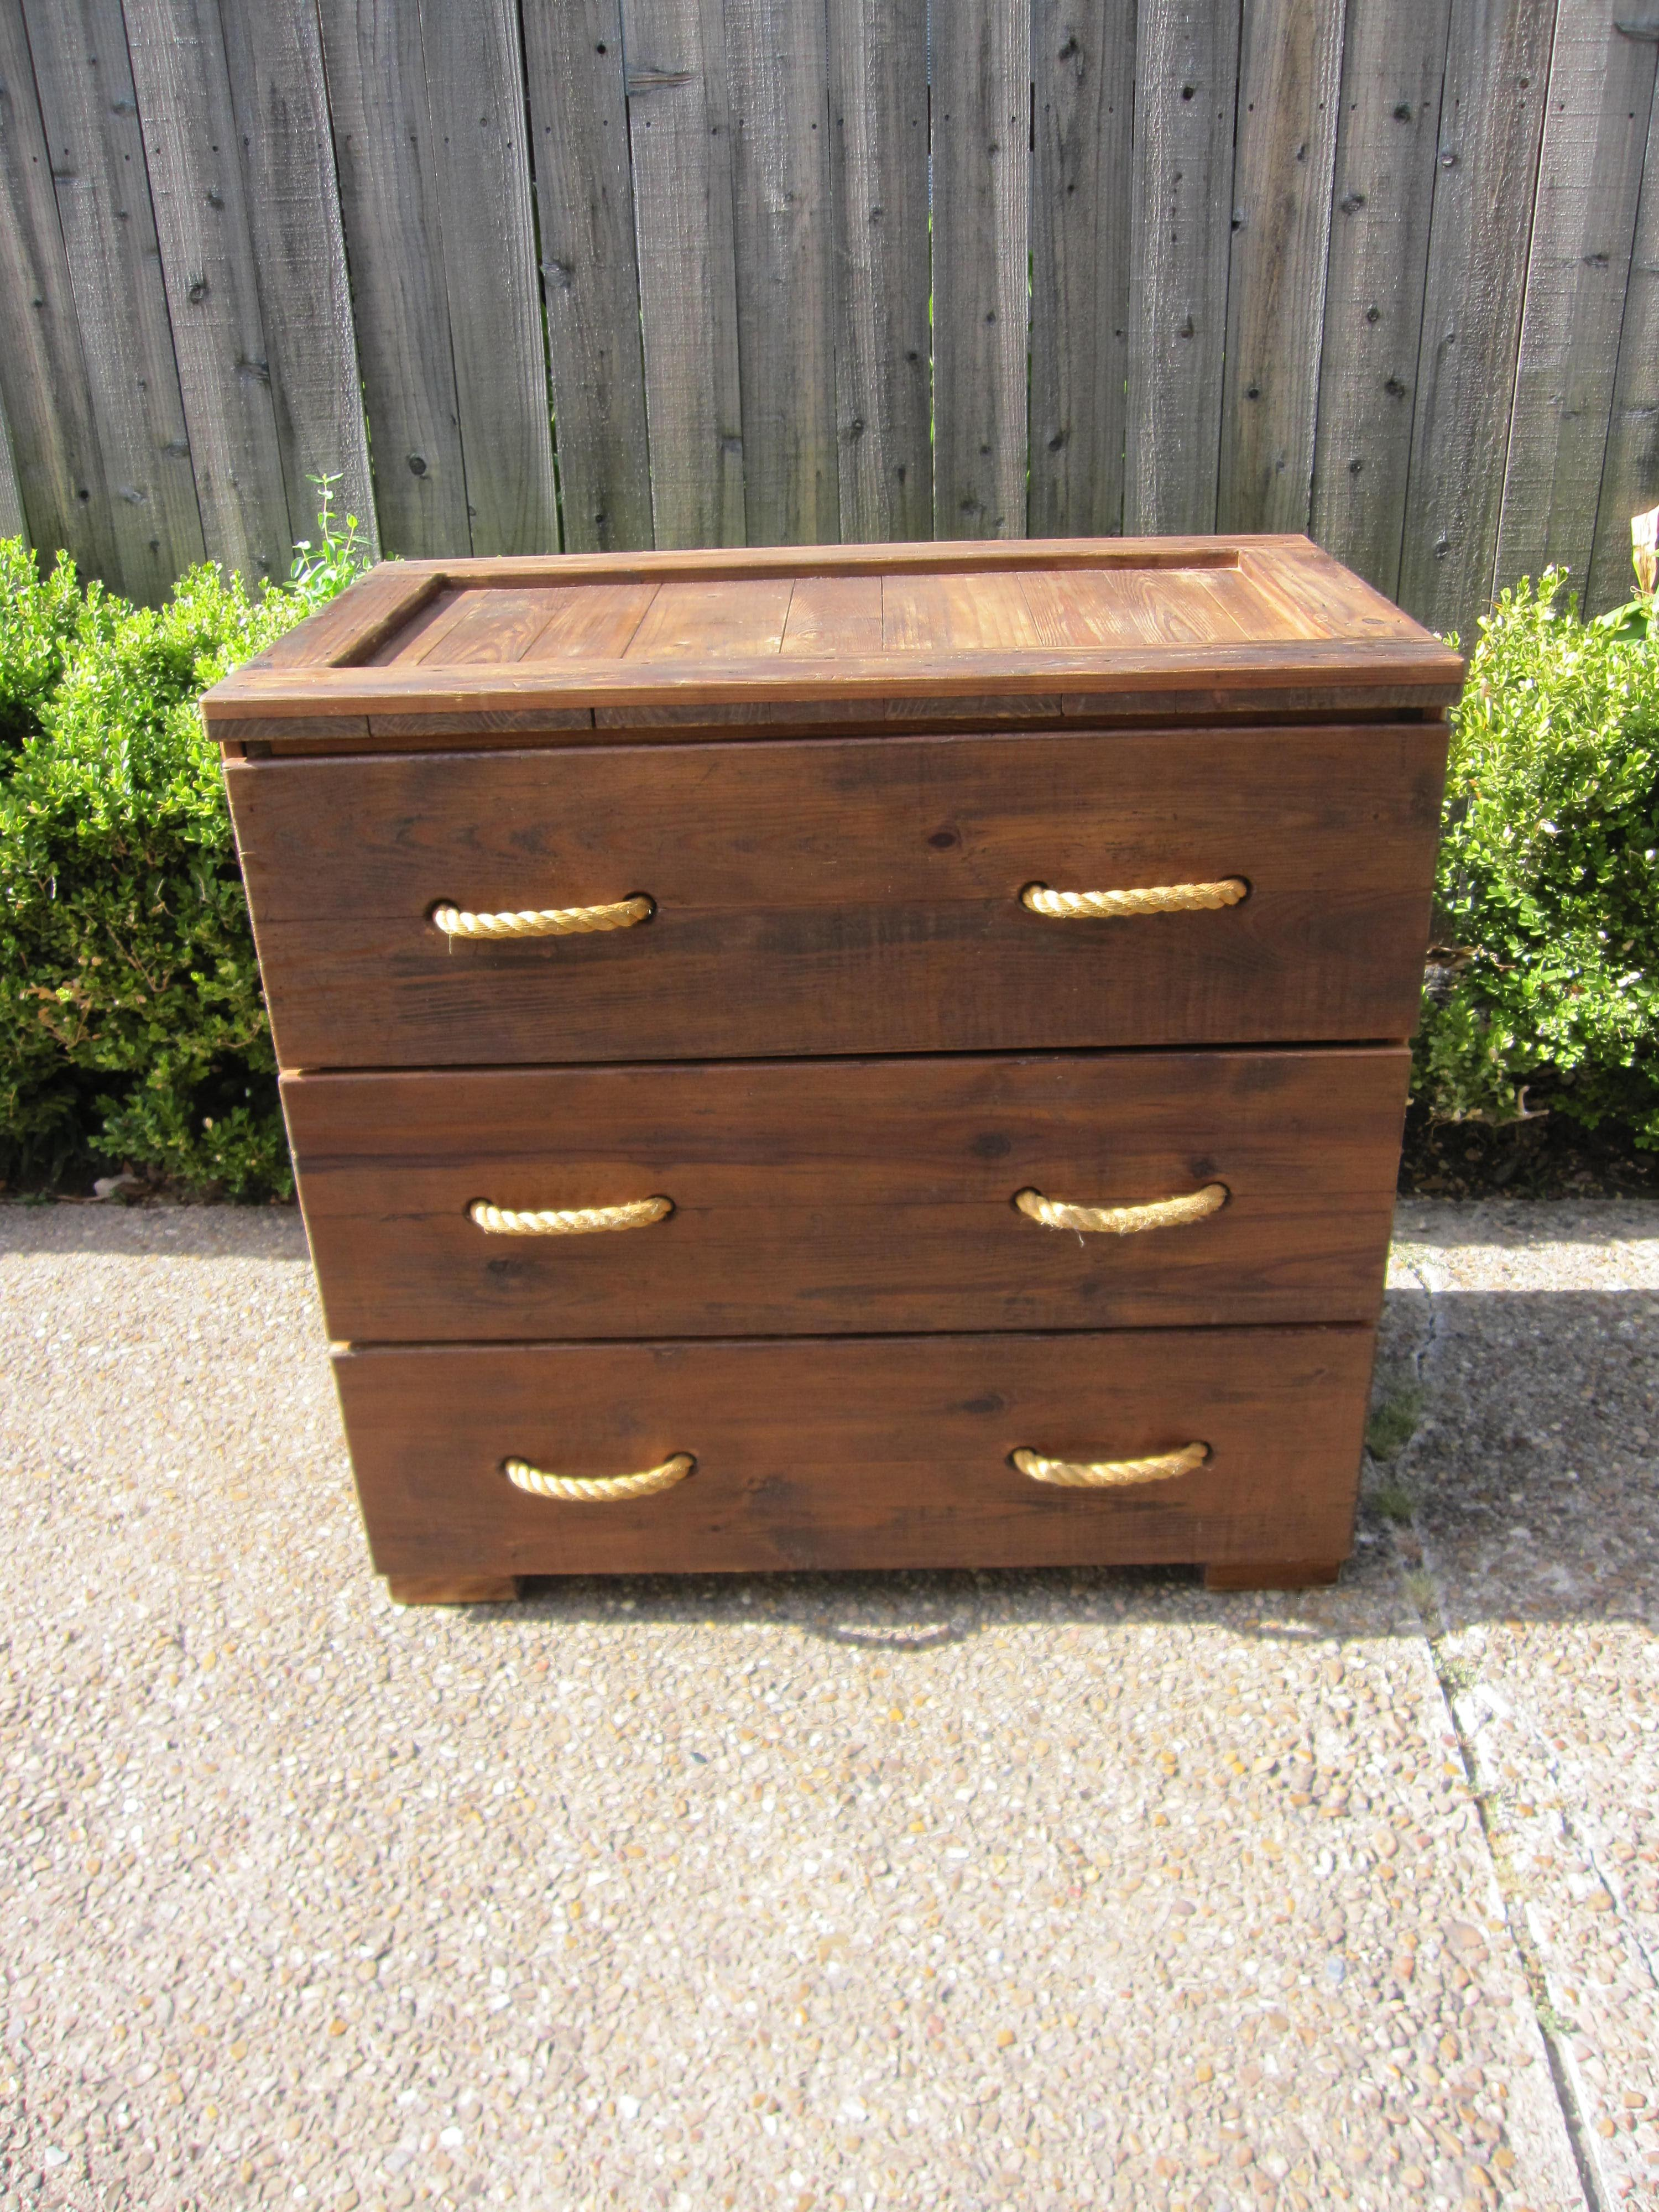 What Can We Say This Chest Of Drawers Is Mive Each Drawer 12 Inches Tall 24 Deep And Almost 40 Wide It S Made Solid Wood With